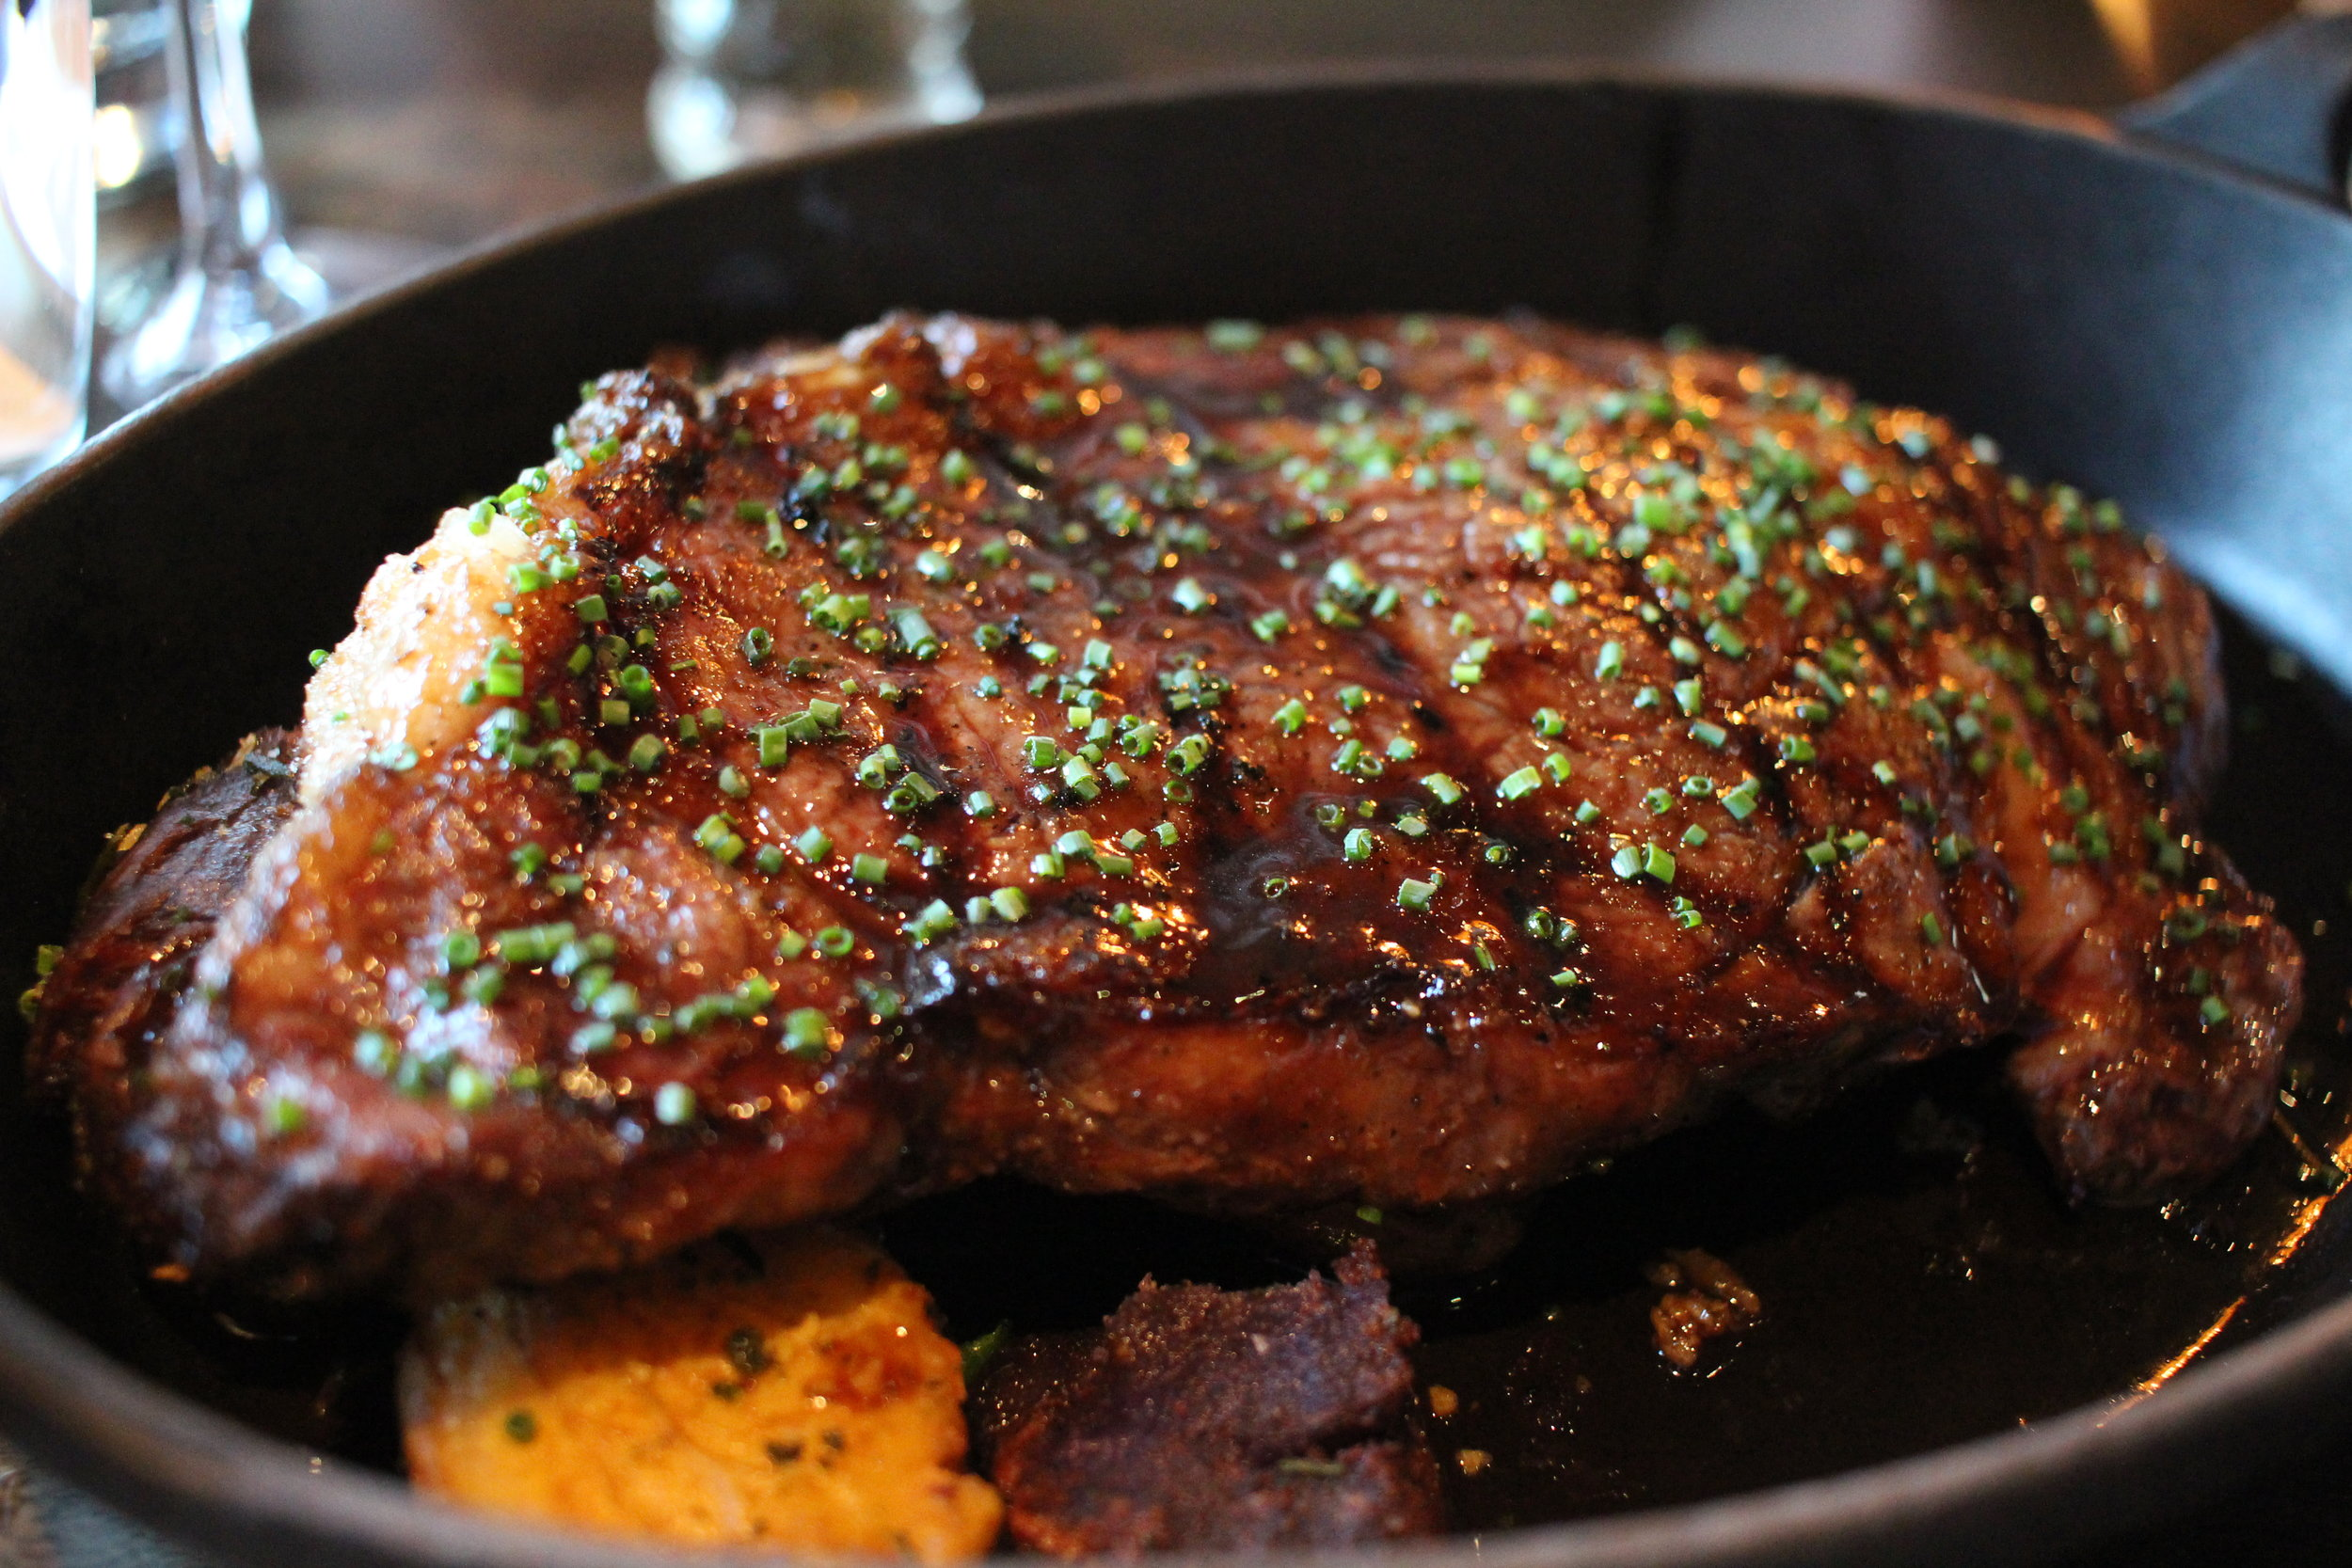 Redd Wood in Napa (Yountville) makes a fantastic steak!